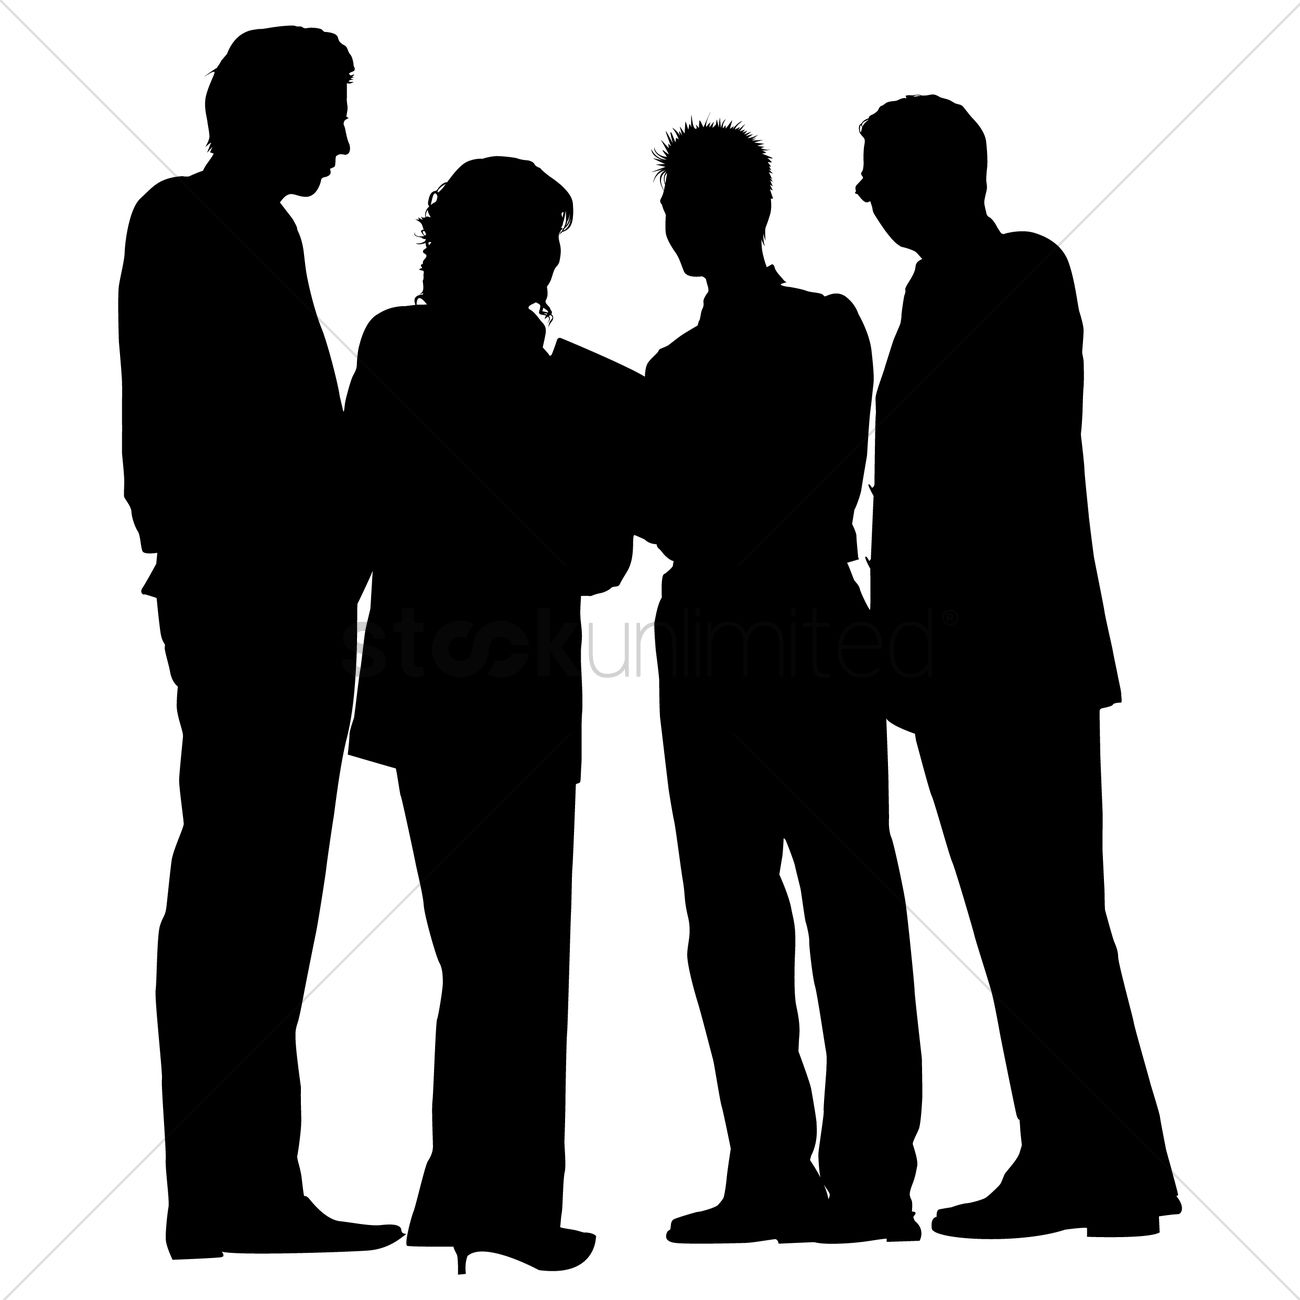 Silhouette People Standing - ClipArt Best